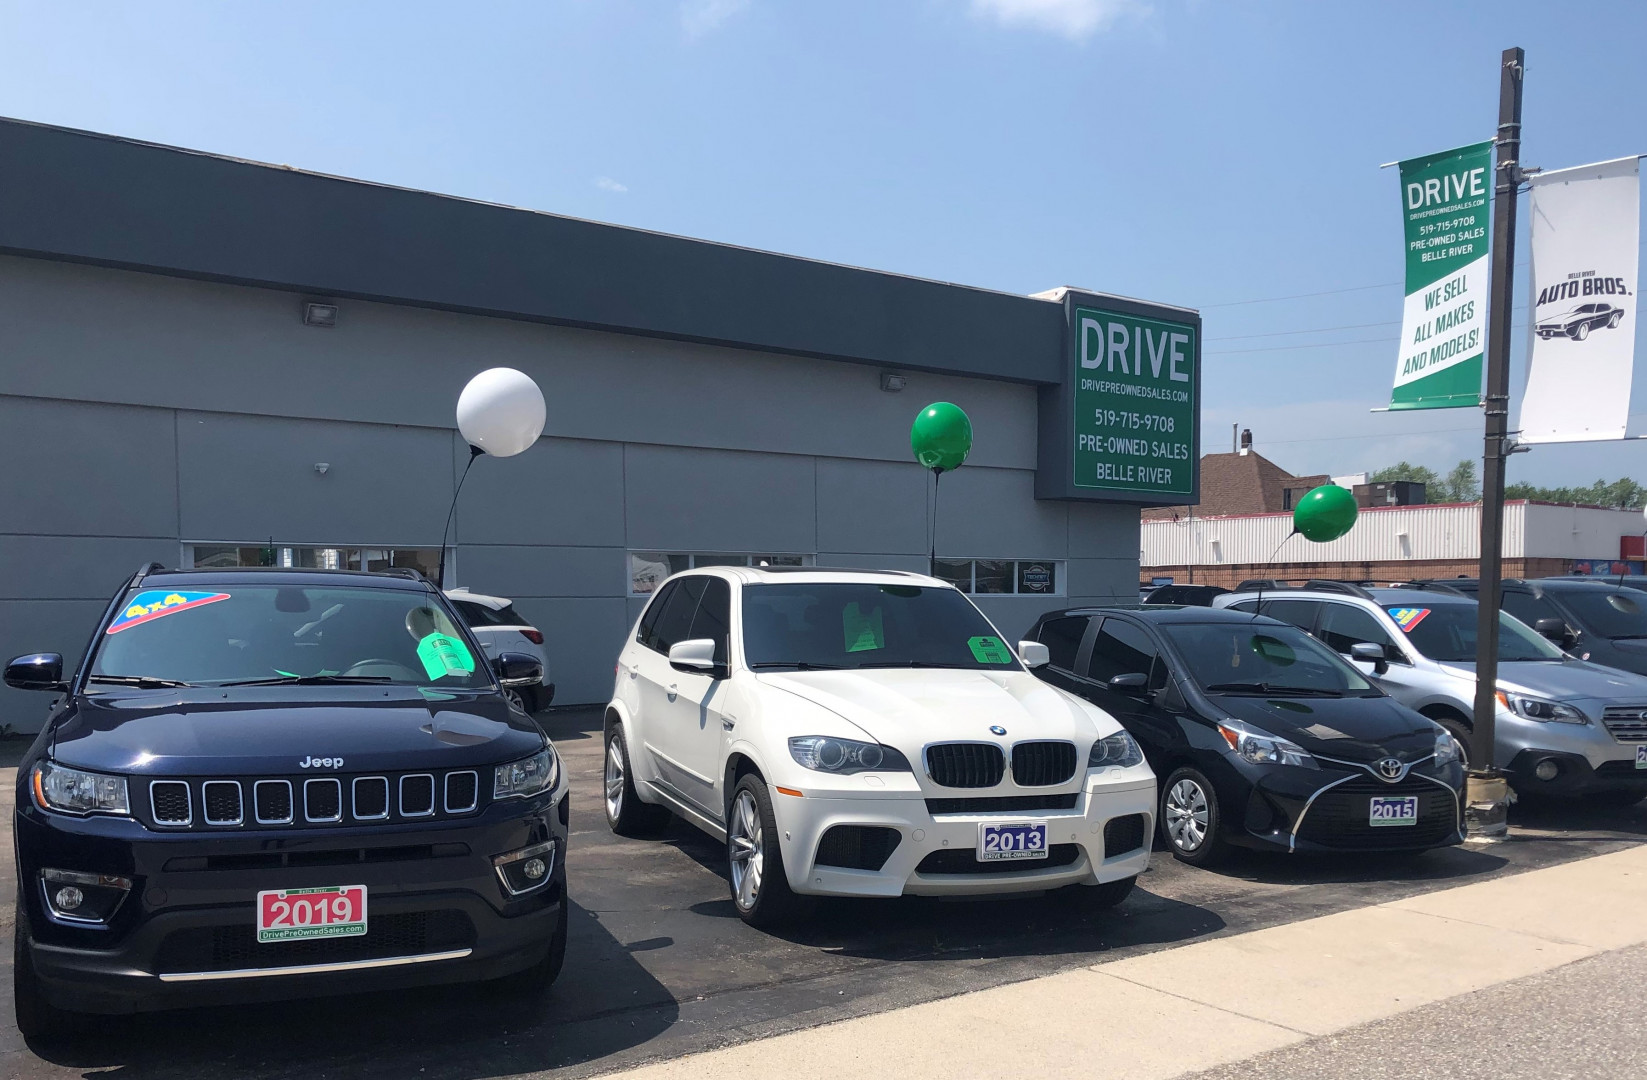 Drive Pre-Owned Sales - Belle River